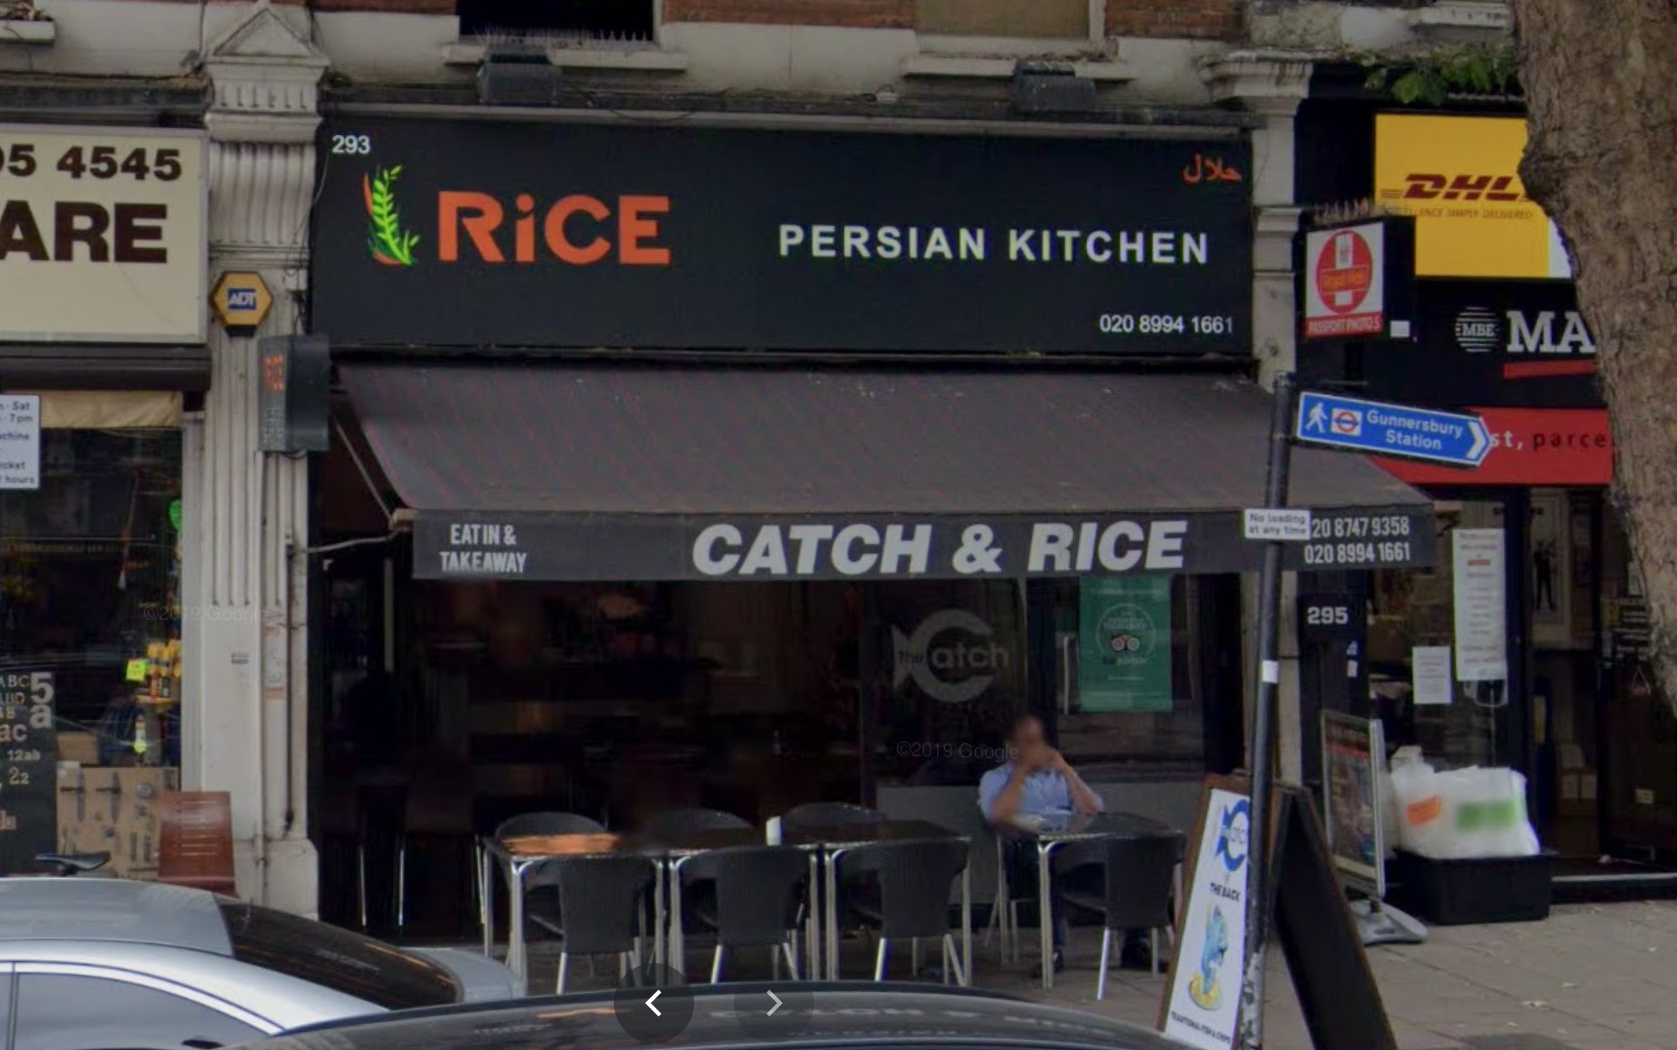 Rice Persian Kitchen